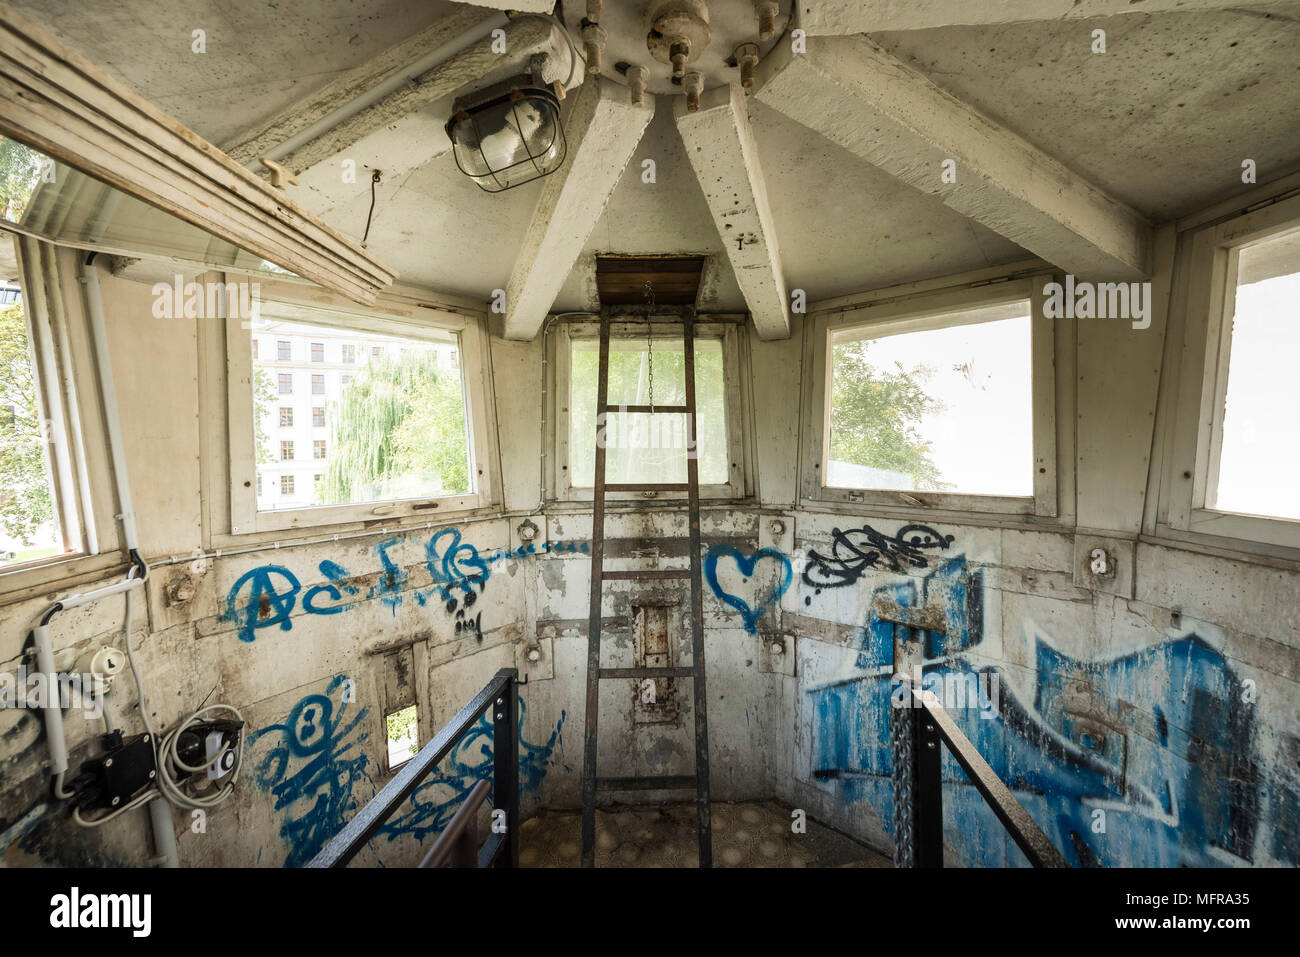 Berlin. Germany. East German watchtower (Type BT-6) interior, on Erner Berger Strasse just off Potzdamer Platz. - Stock Image